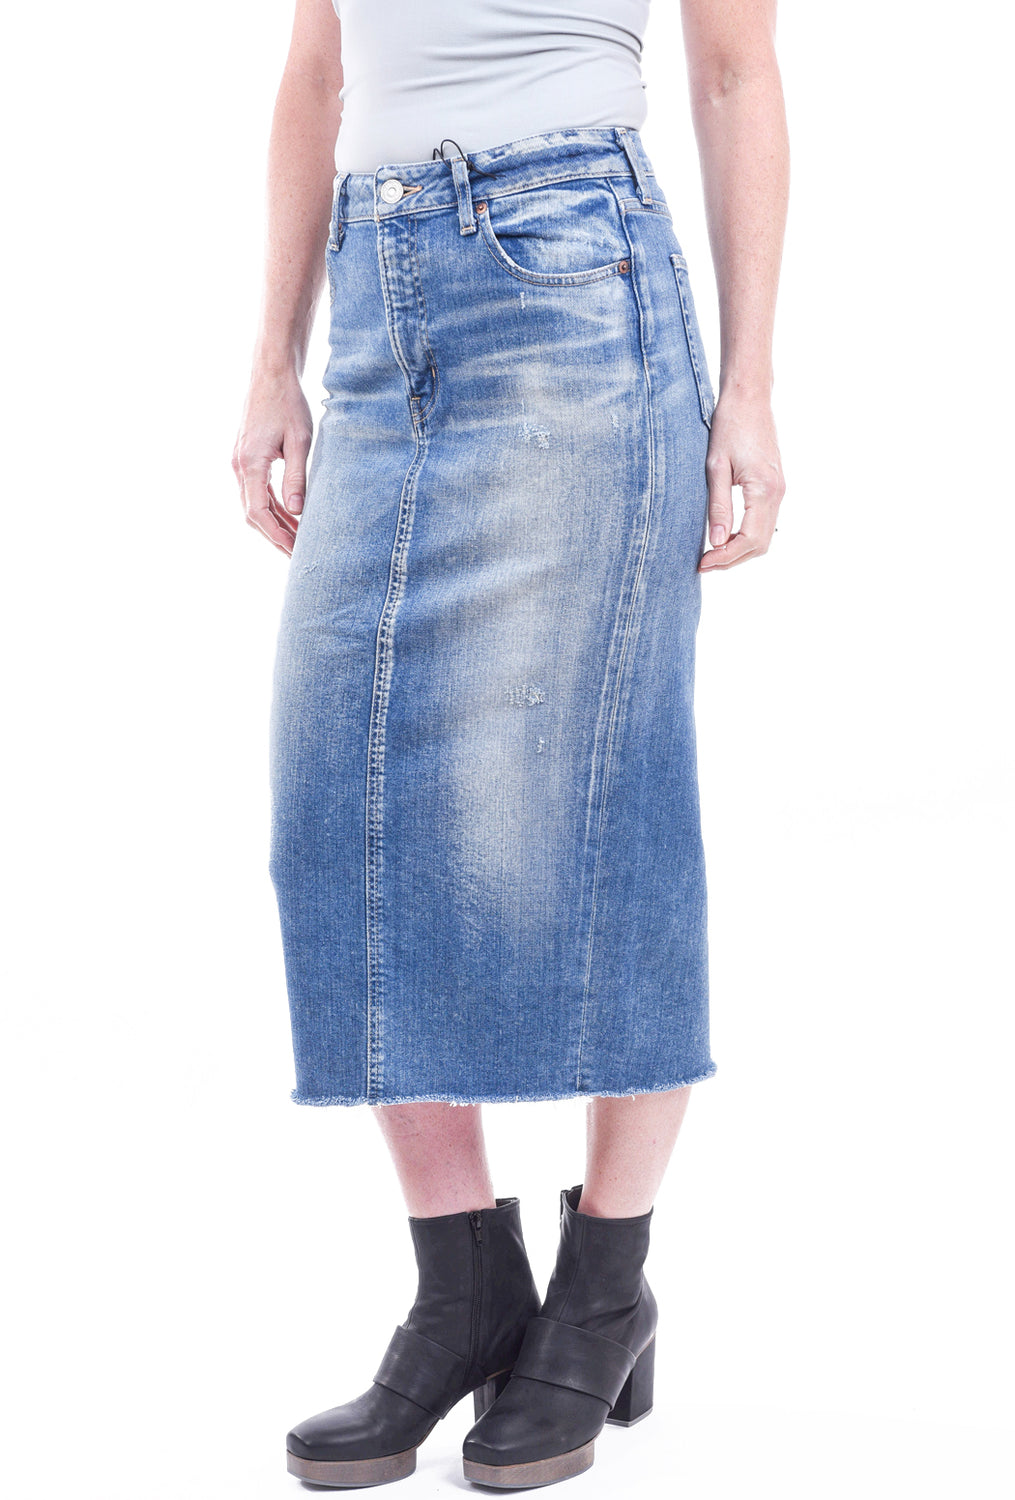 Moussy Denim Comfort Norma Long Denim Skirt, Blue